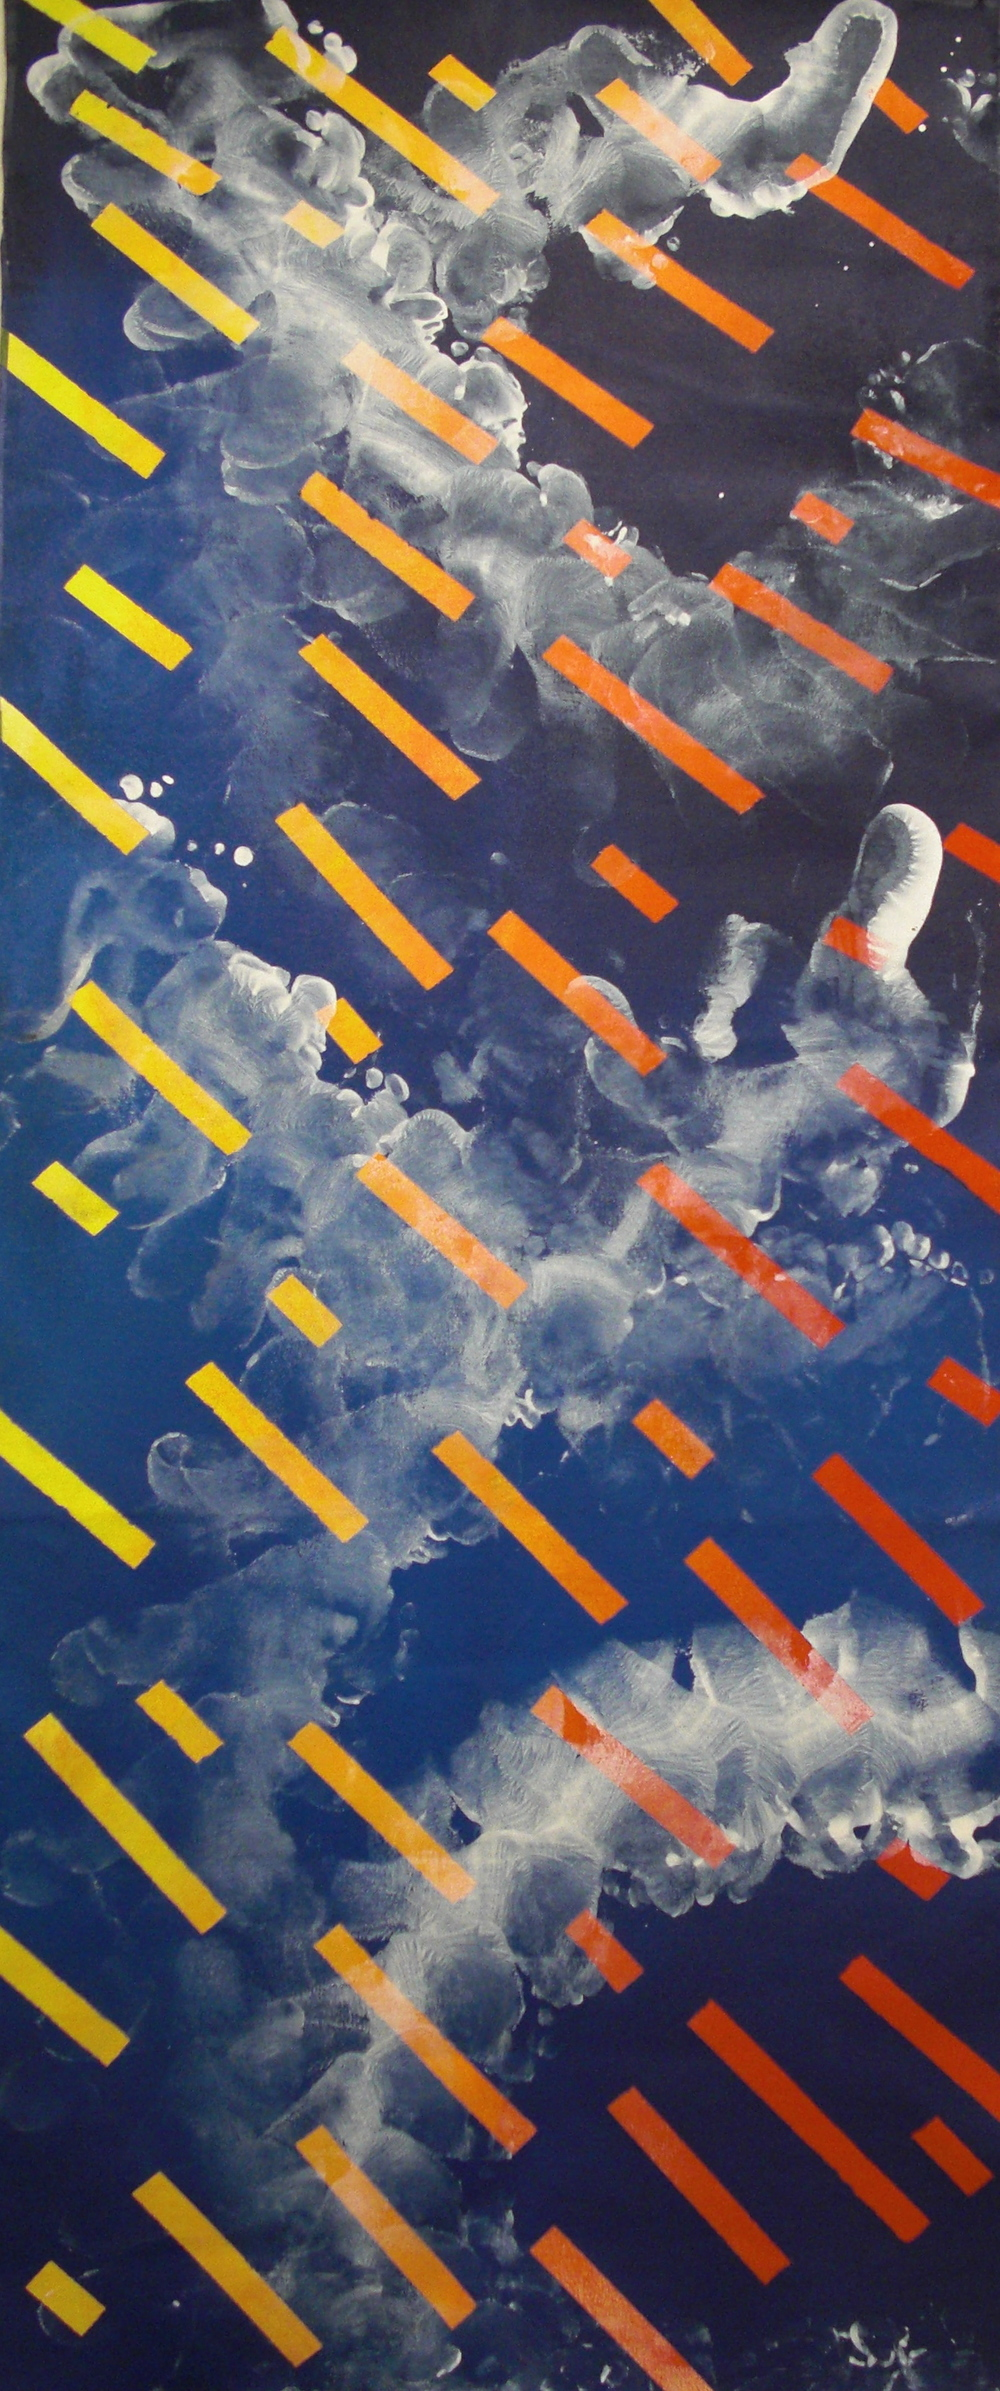 Dance #4, Acrylic on canvas, 2'x6', 2010-2011